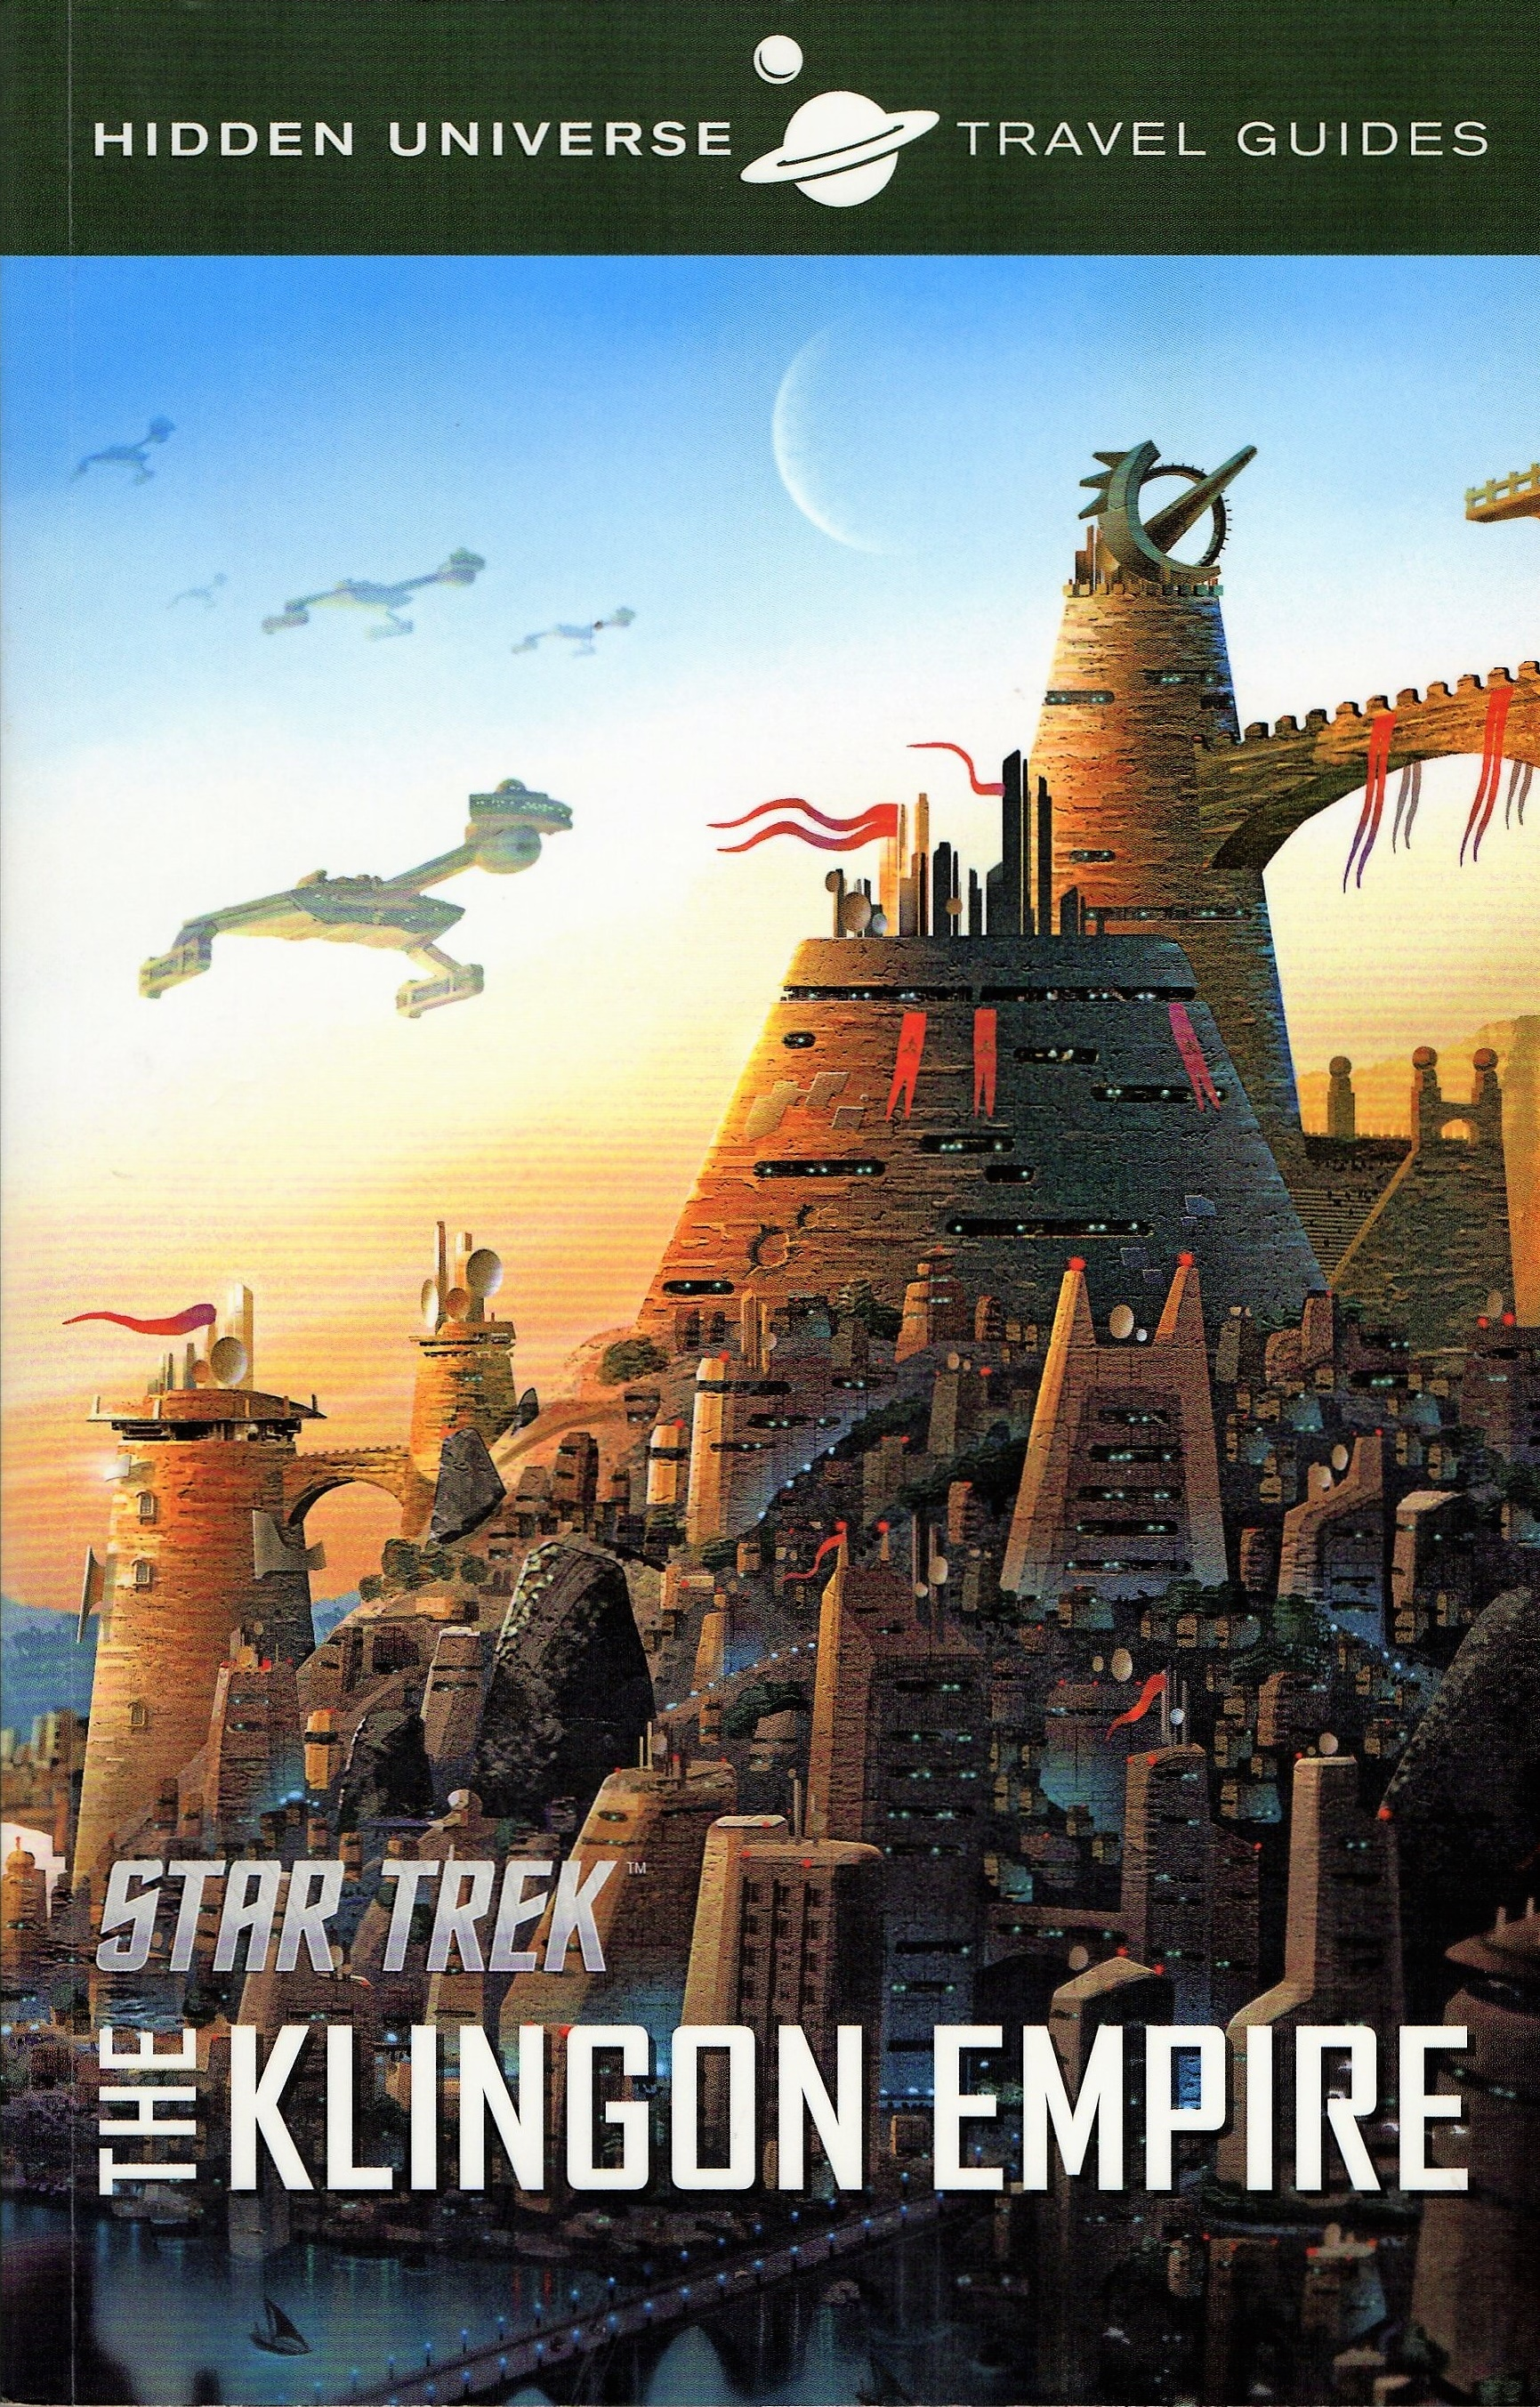 Hidden Universe Travel Guide: The Klingon Empire